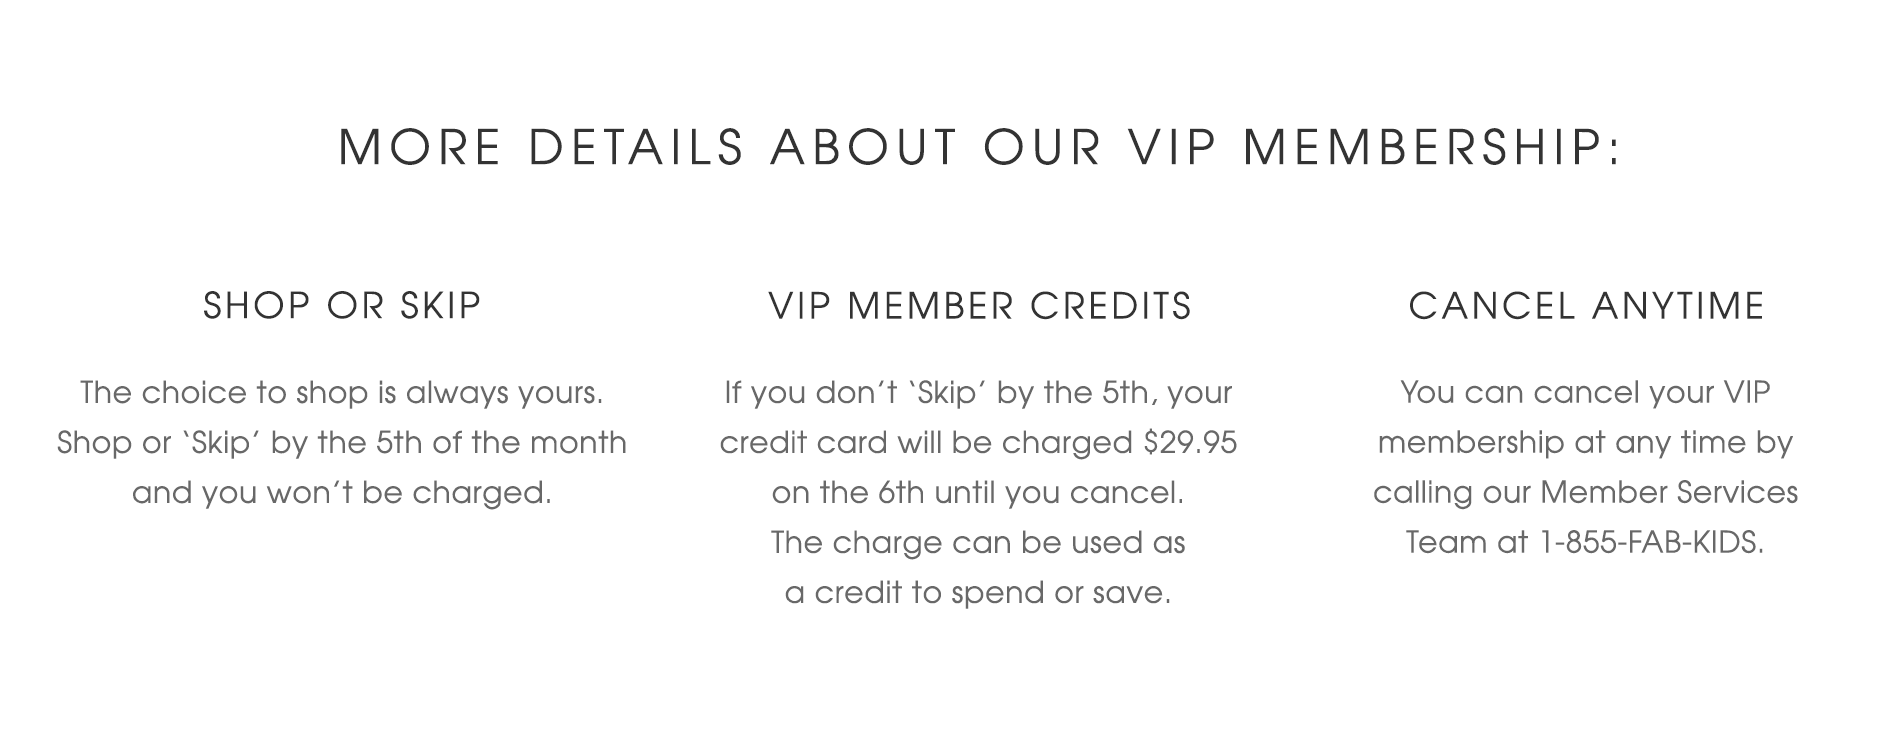 More details about our VIP Membership